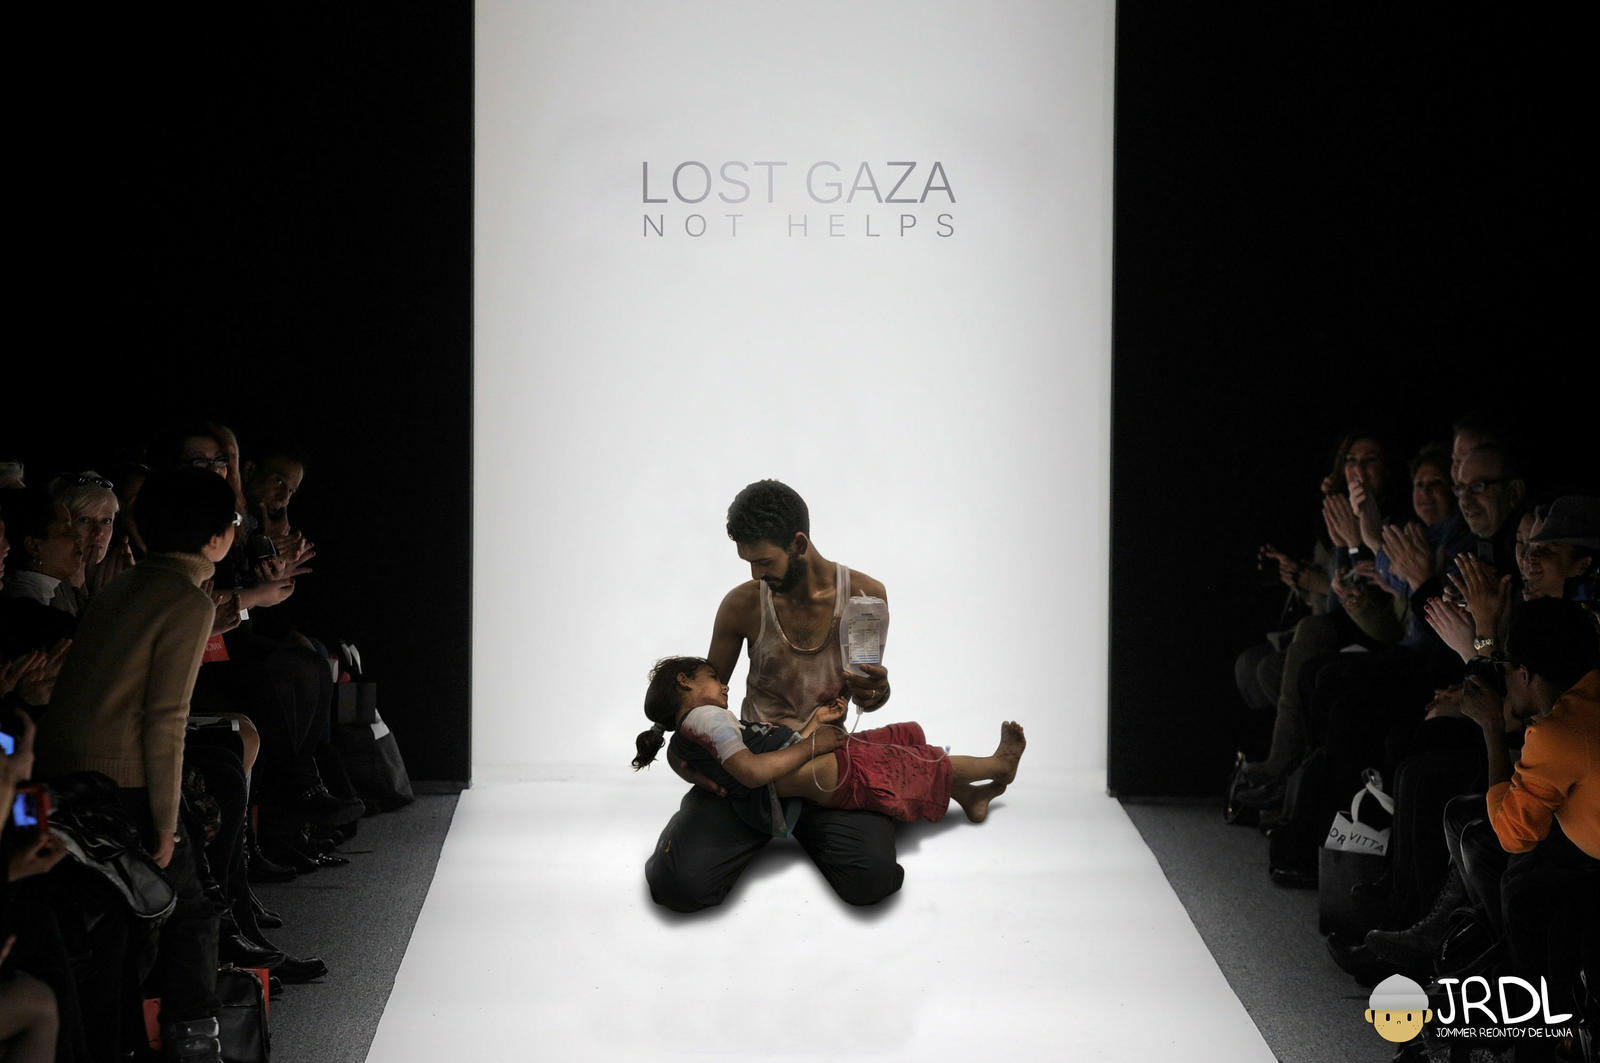 Lost Gaza - Not Helps